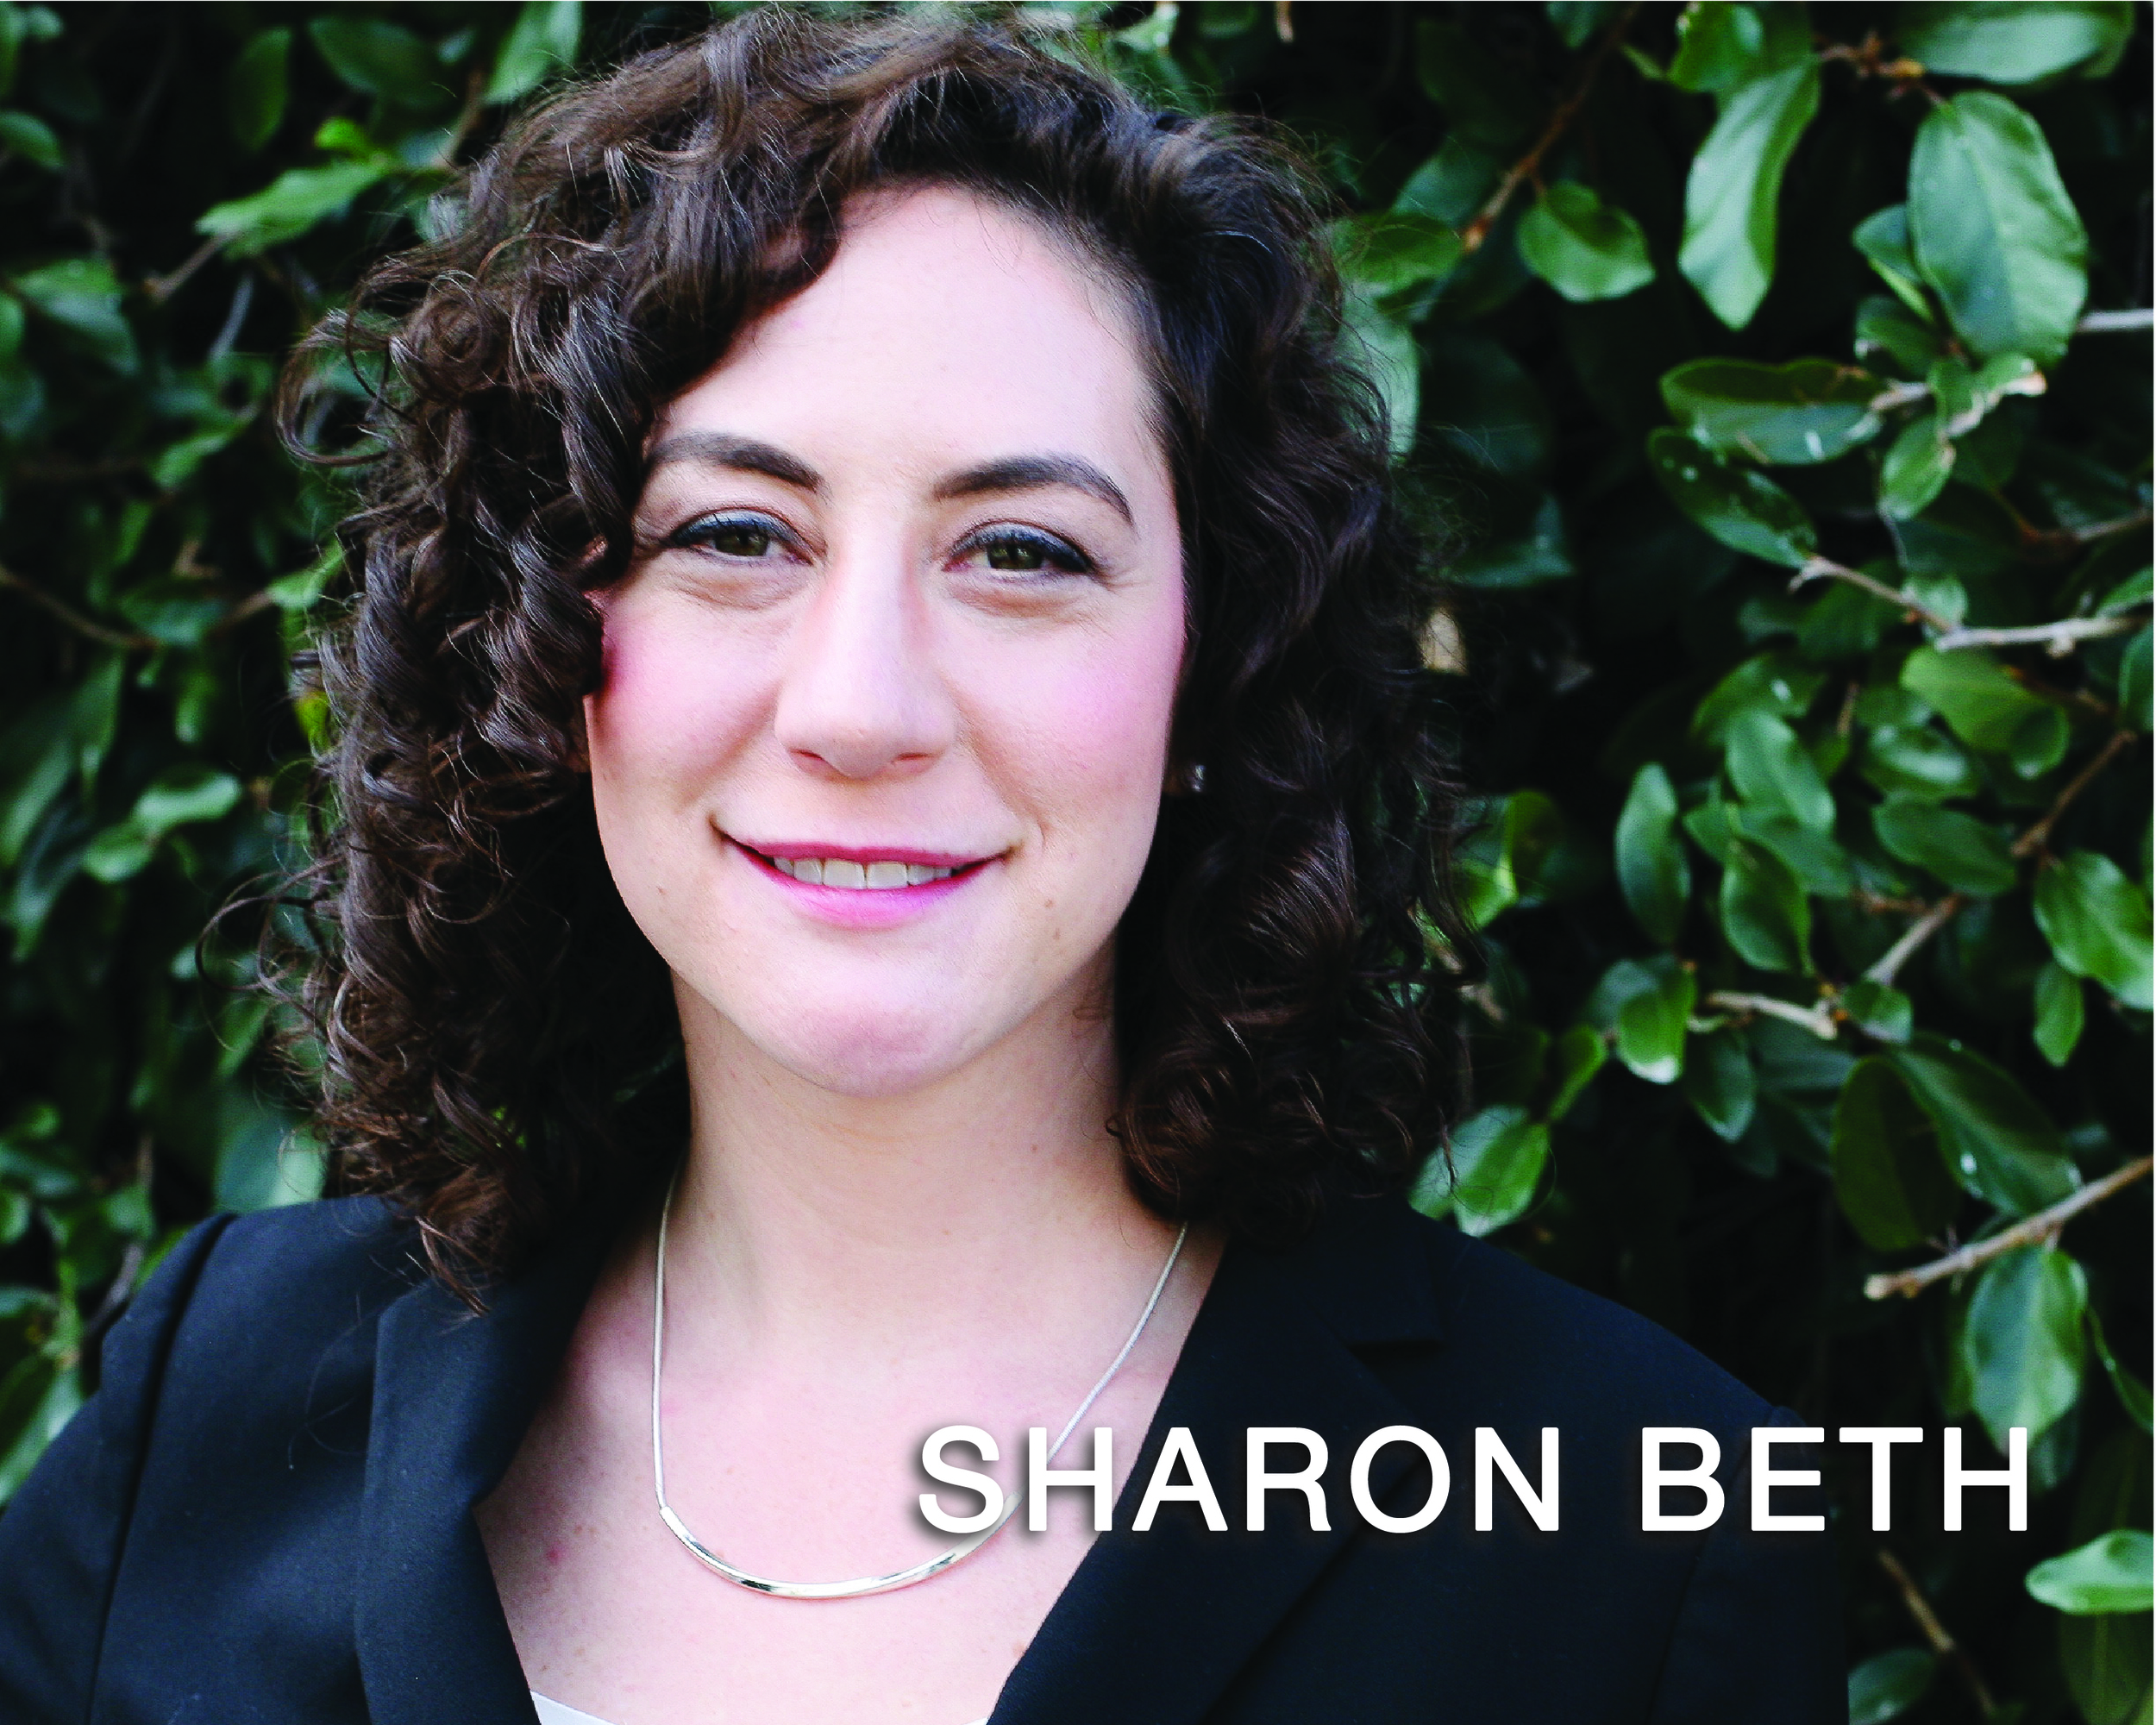 Meet Sharon Beth  , the office manager at Brilliant Dental in Escondido, CA.